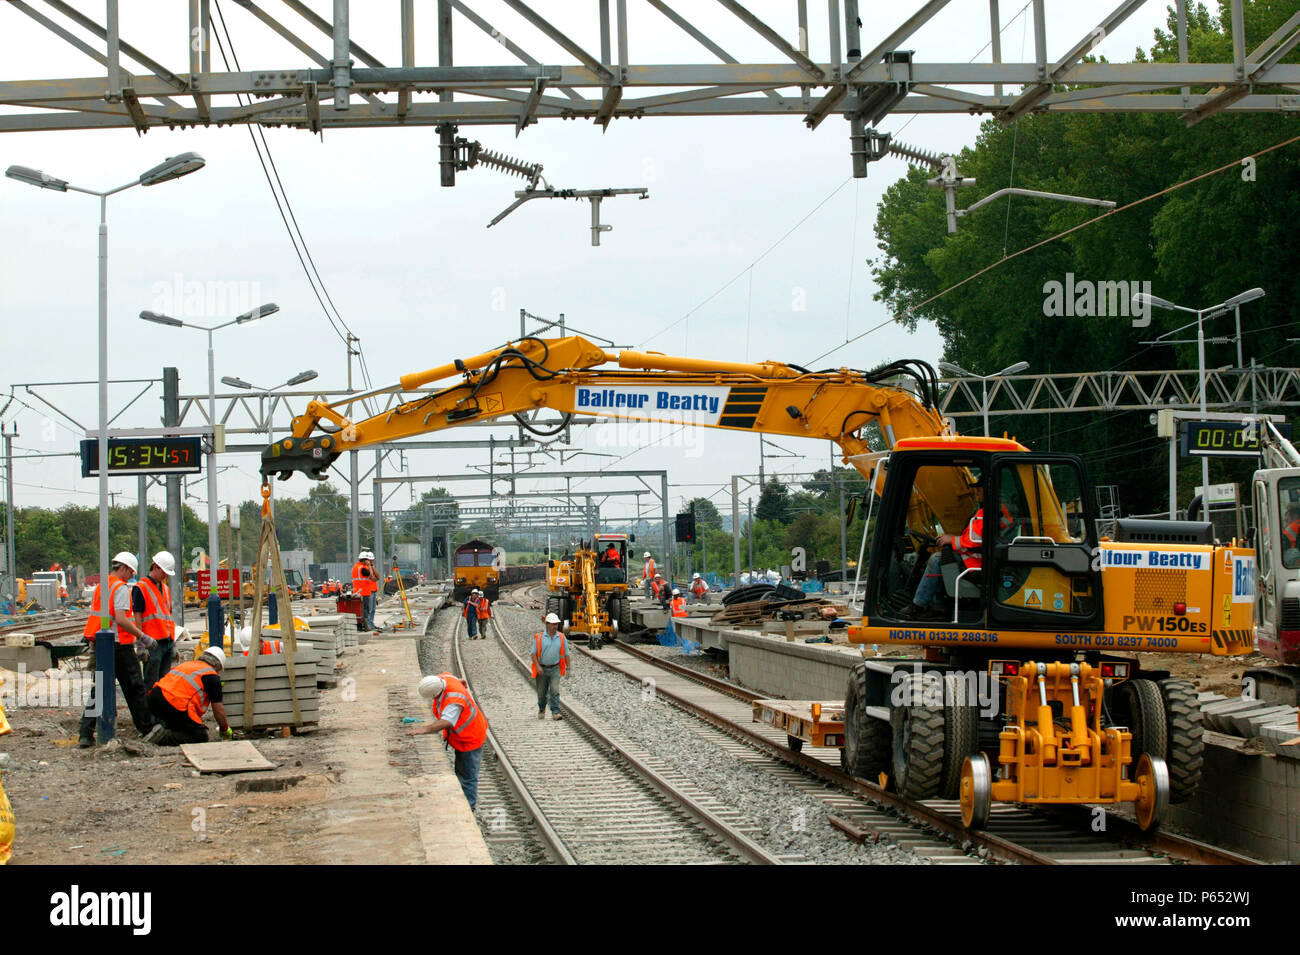 New platform coping stones being lifted into position during the modernisation of Tring station during the West Coast Main Line upgrade. June 2004. - Stock Image